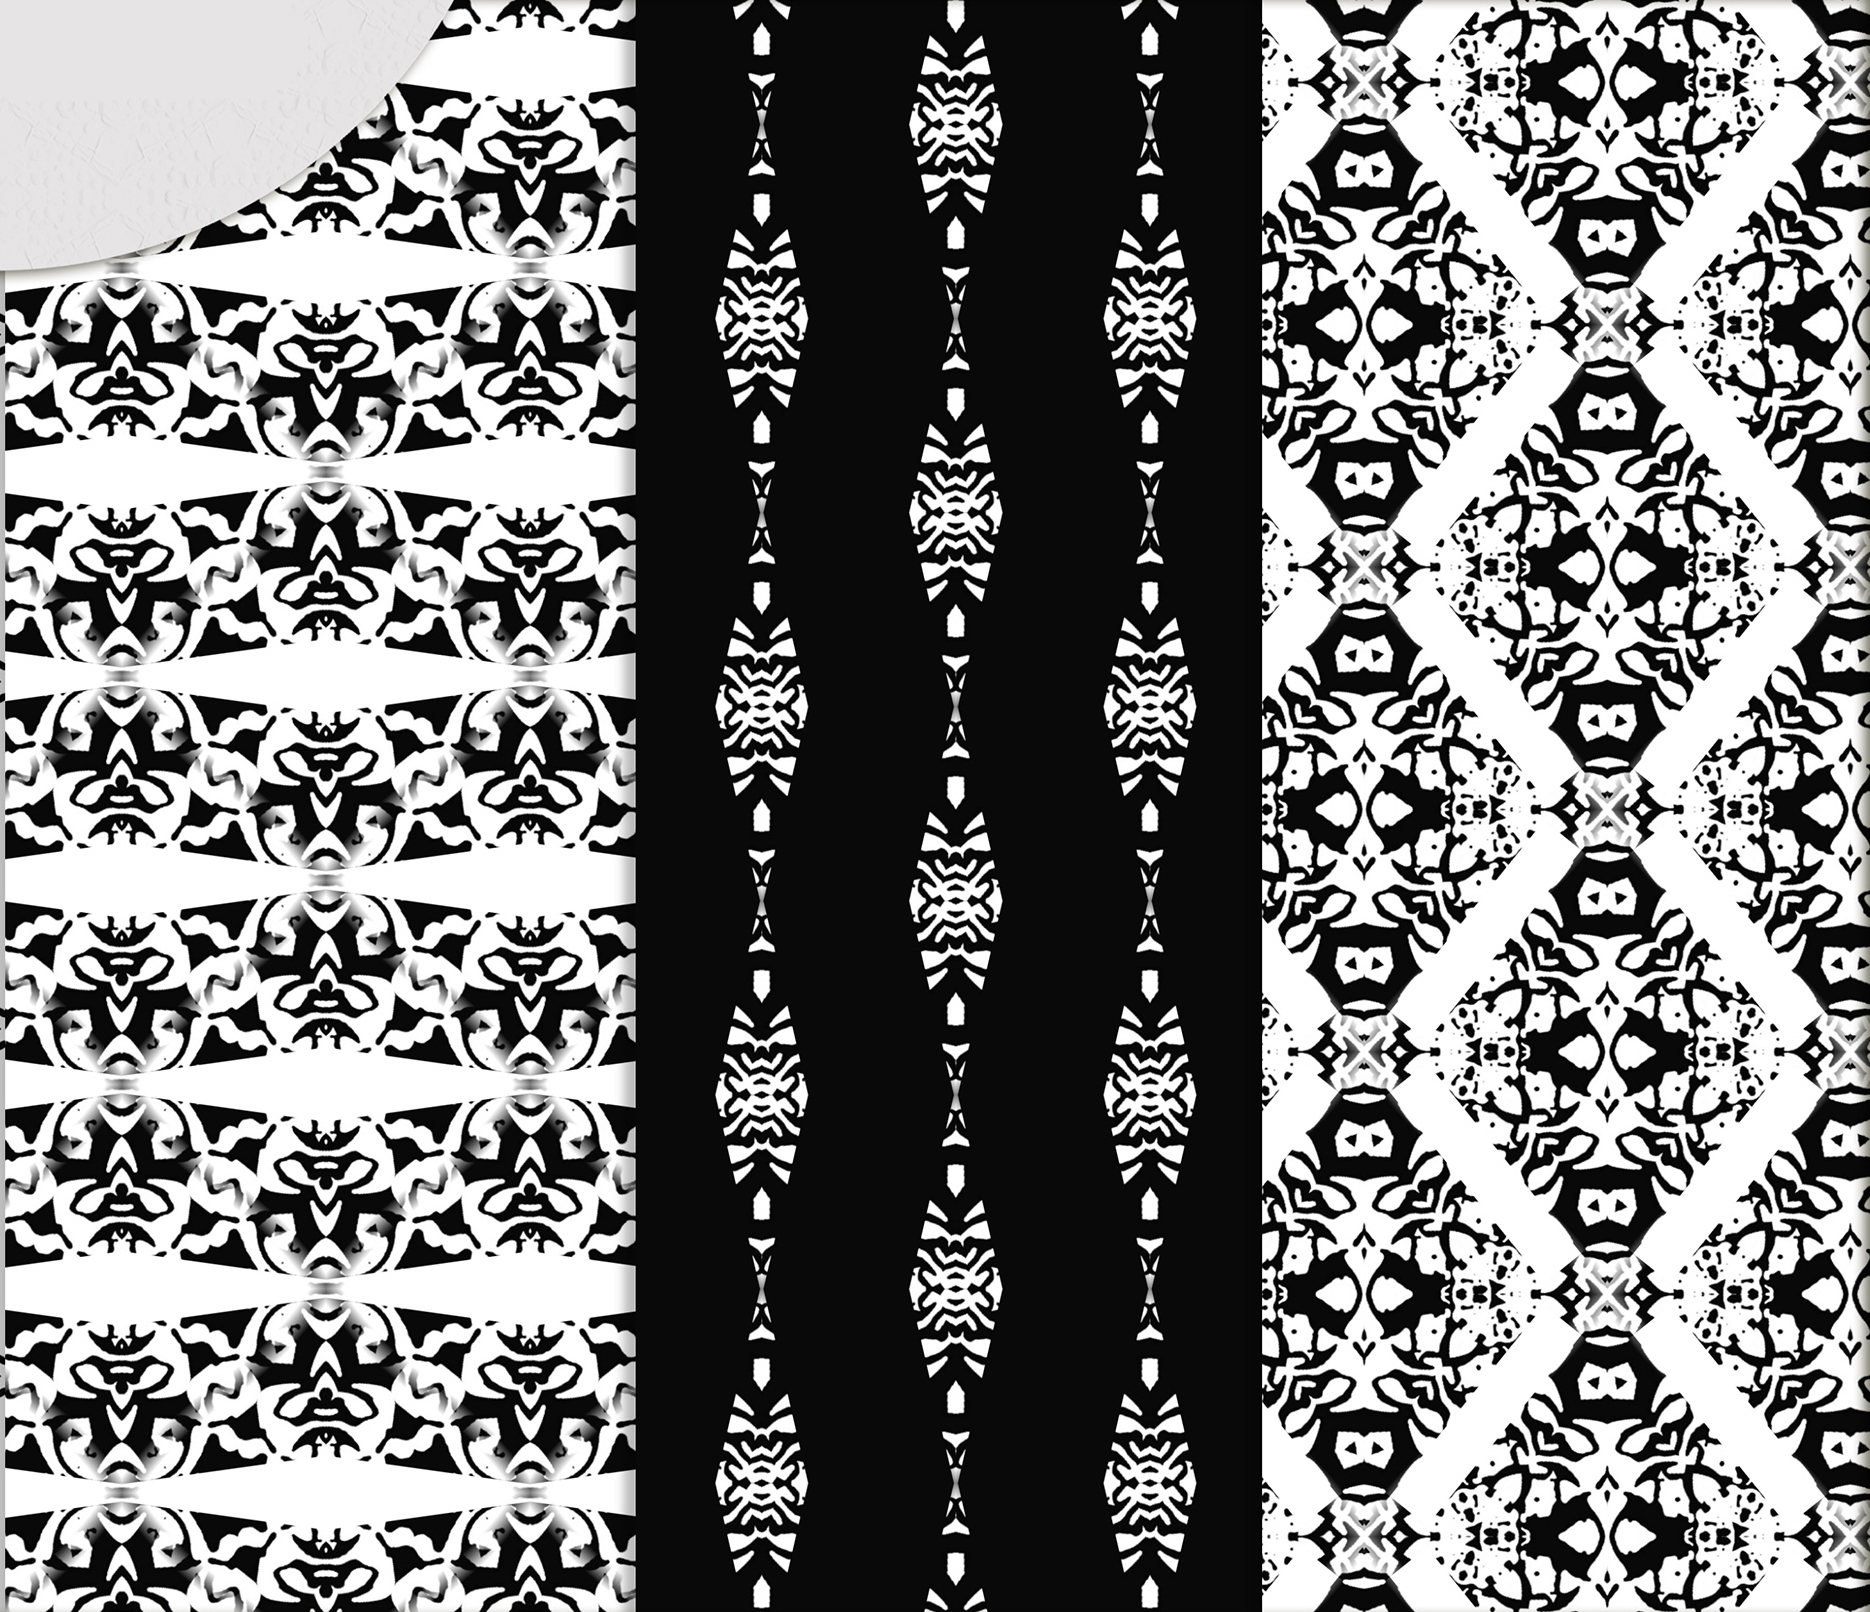 Black and white Digital Scrapbook Paper example image 4